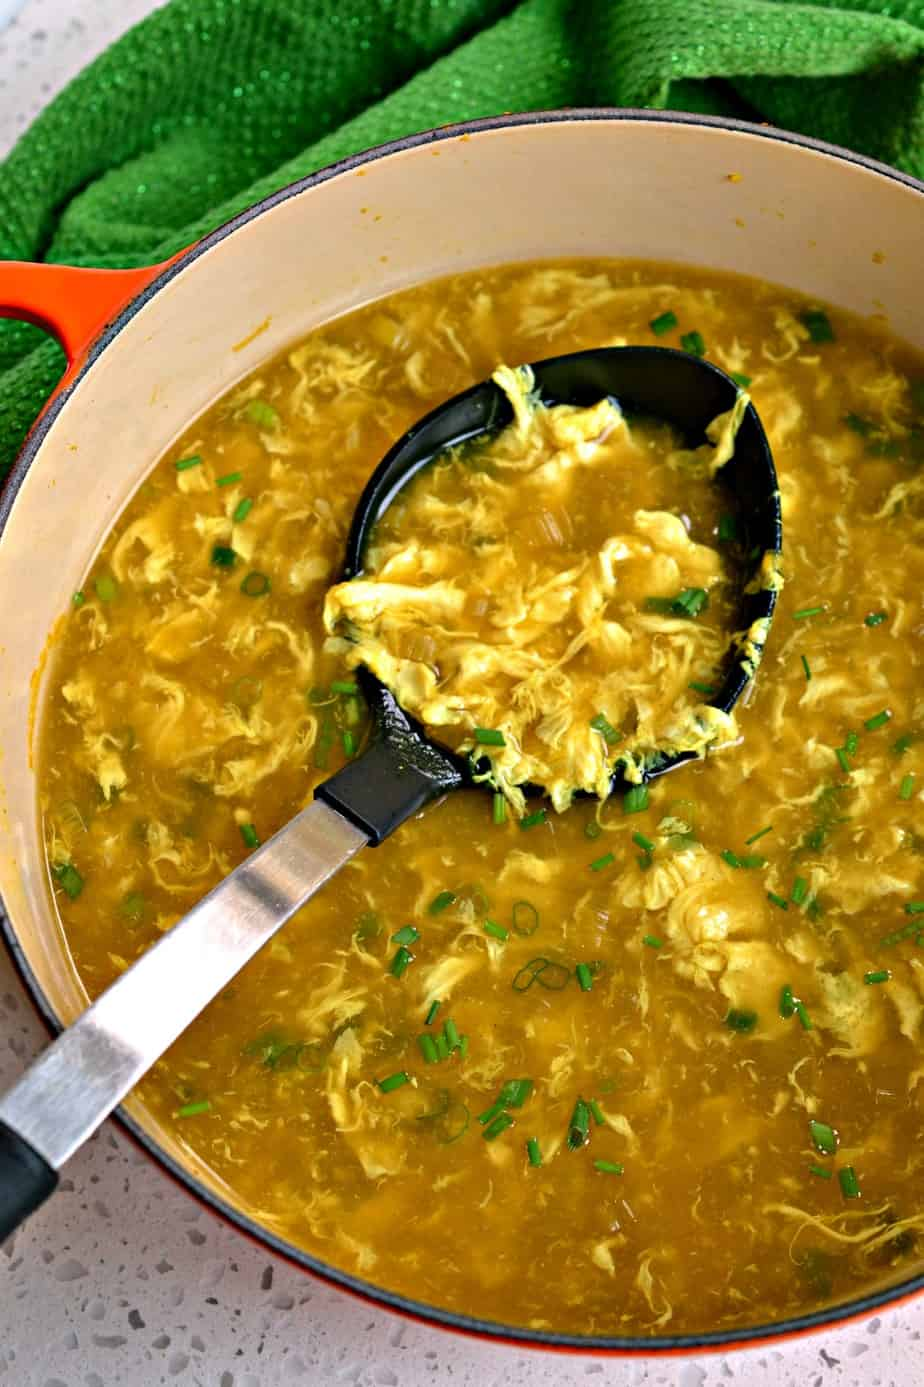 This tasty protein packed soup is better and more natural than most Chinese restaurants at a fraction of the cost.